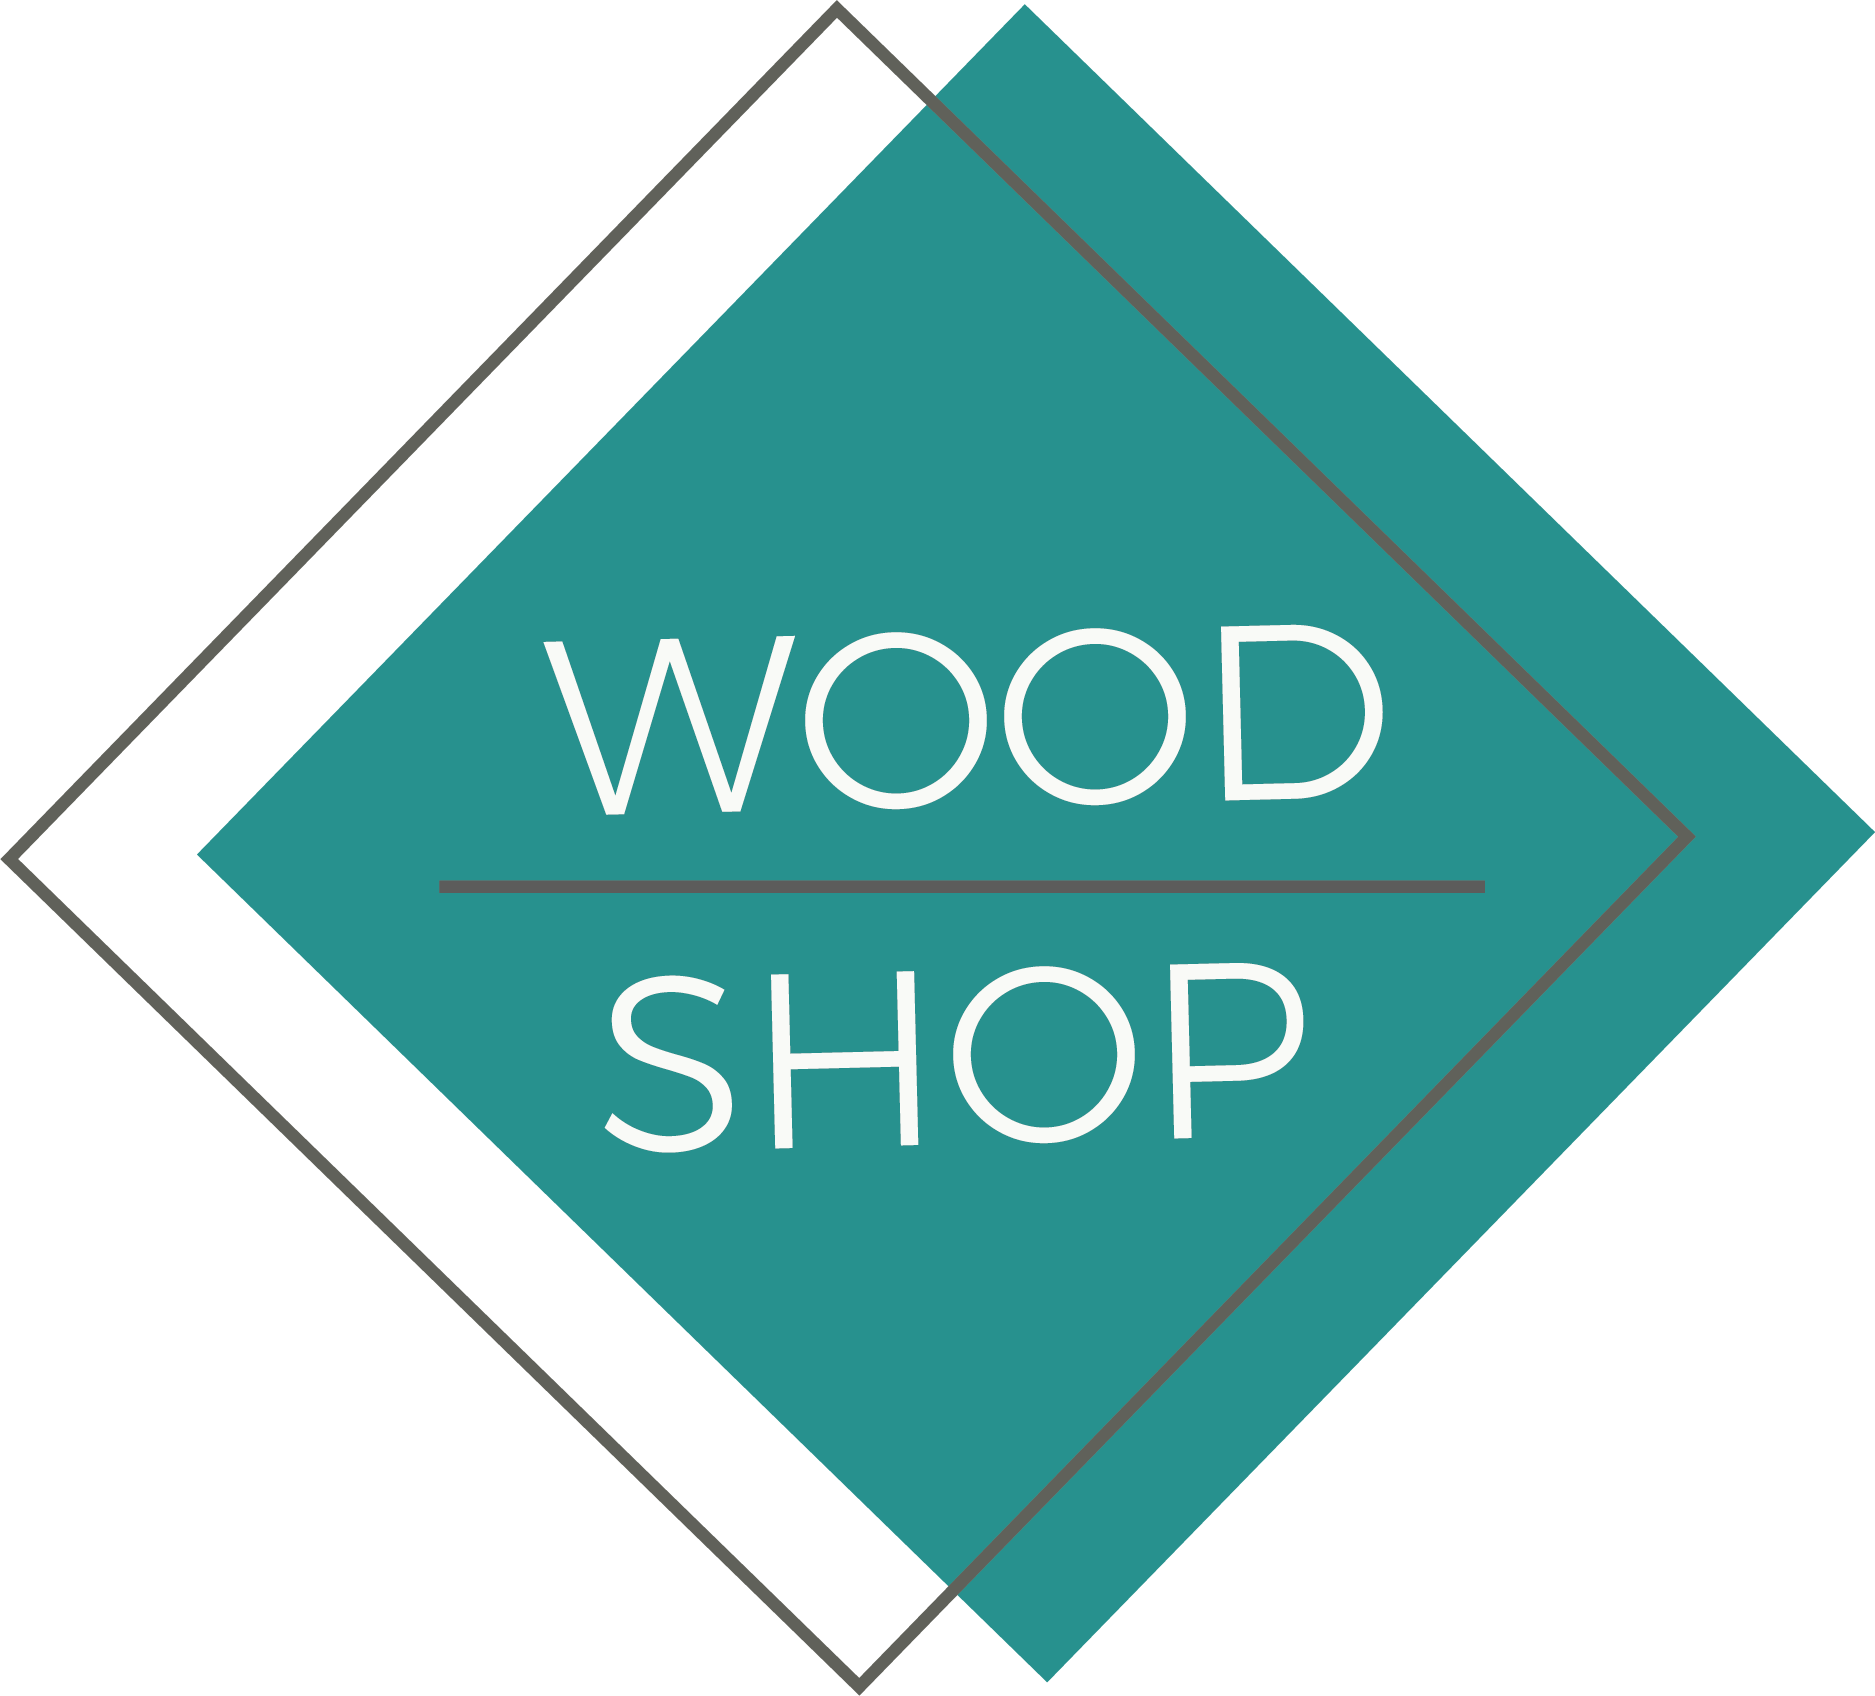 Wood Shop Workers Co-operative